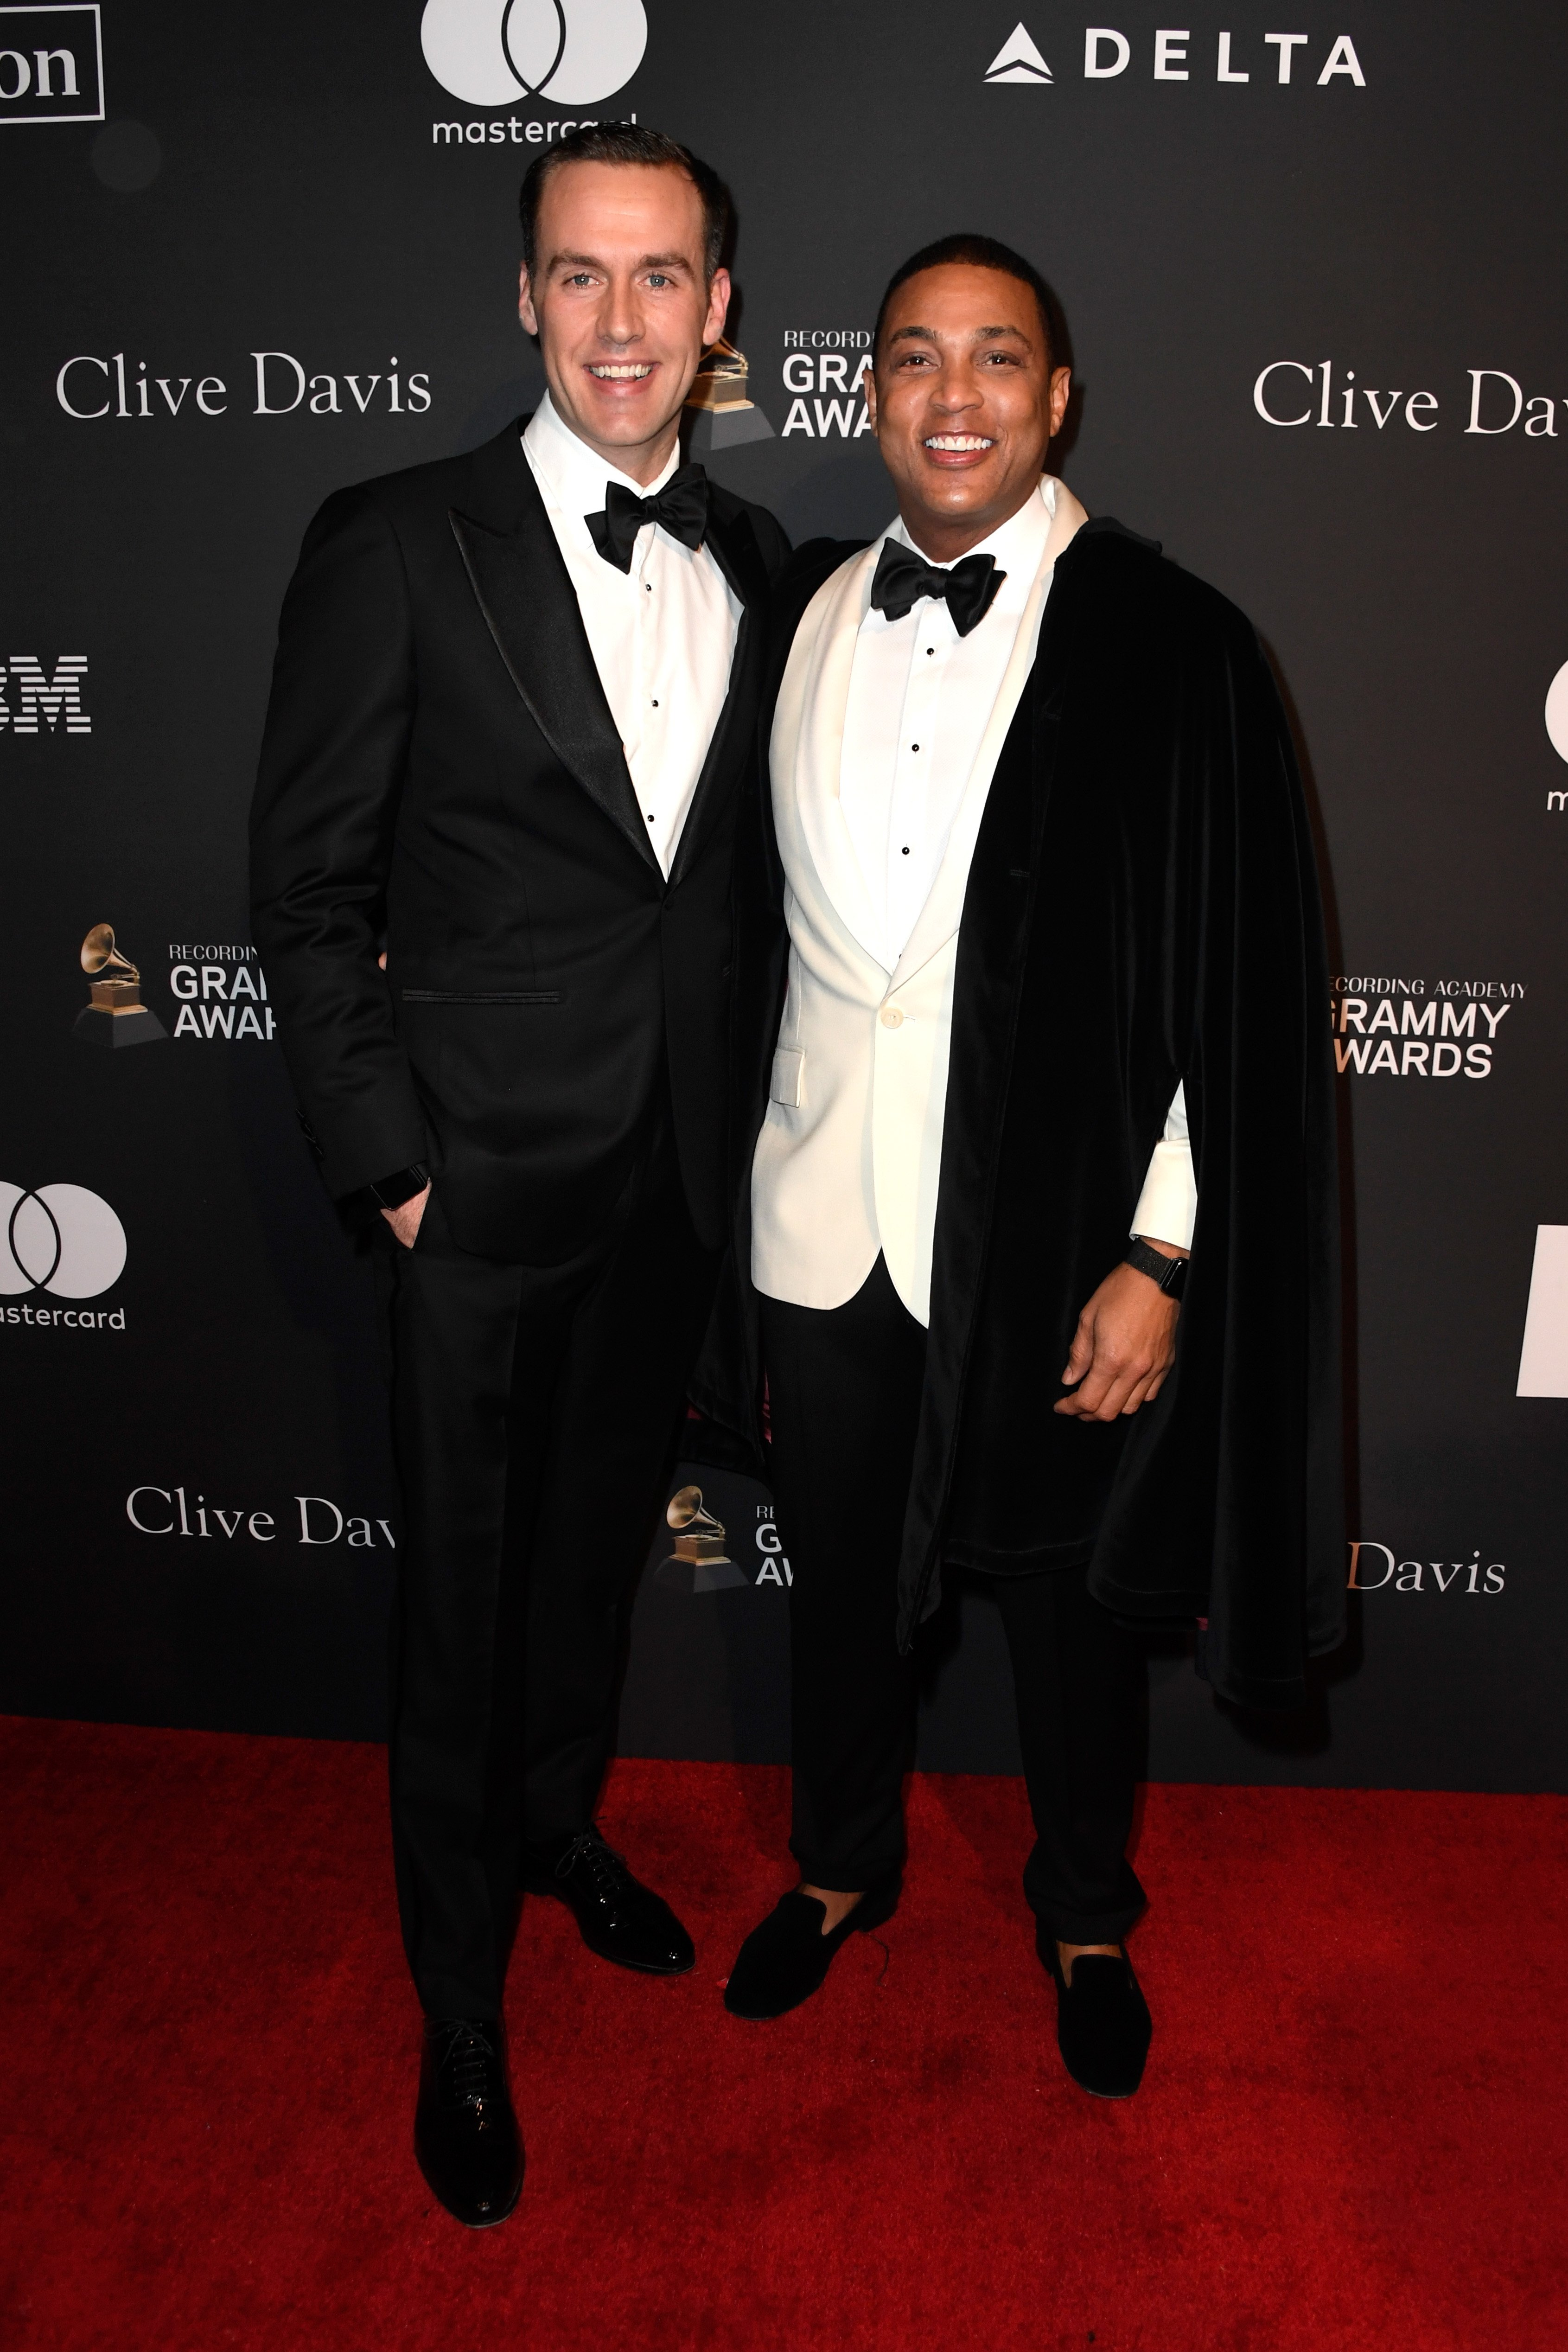 Tim Malone and Don Lemon attend the Pre-Grammy Gala in Beverly Hills, California on February 9, 2019 | Photo: Getty Images